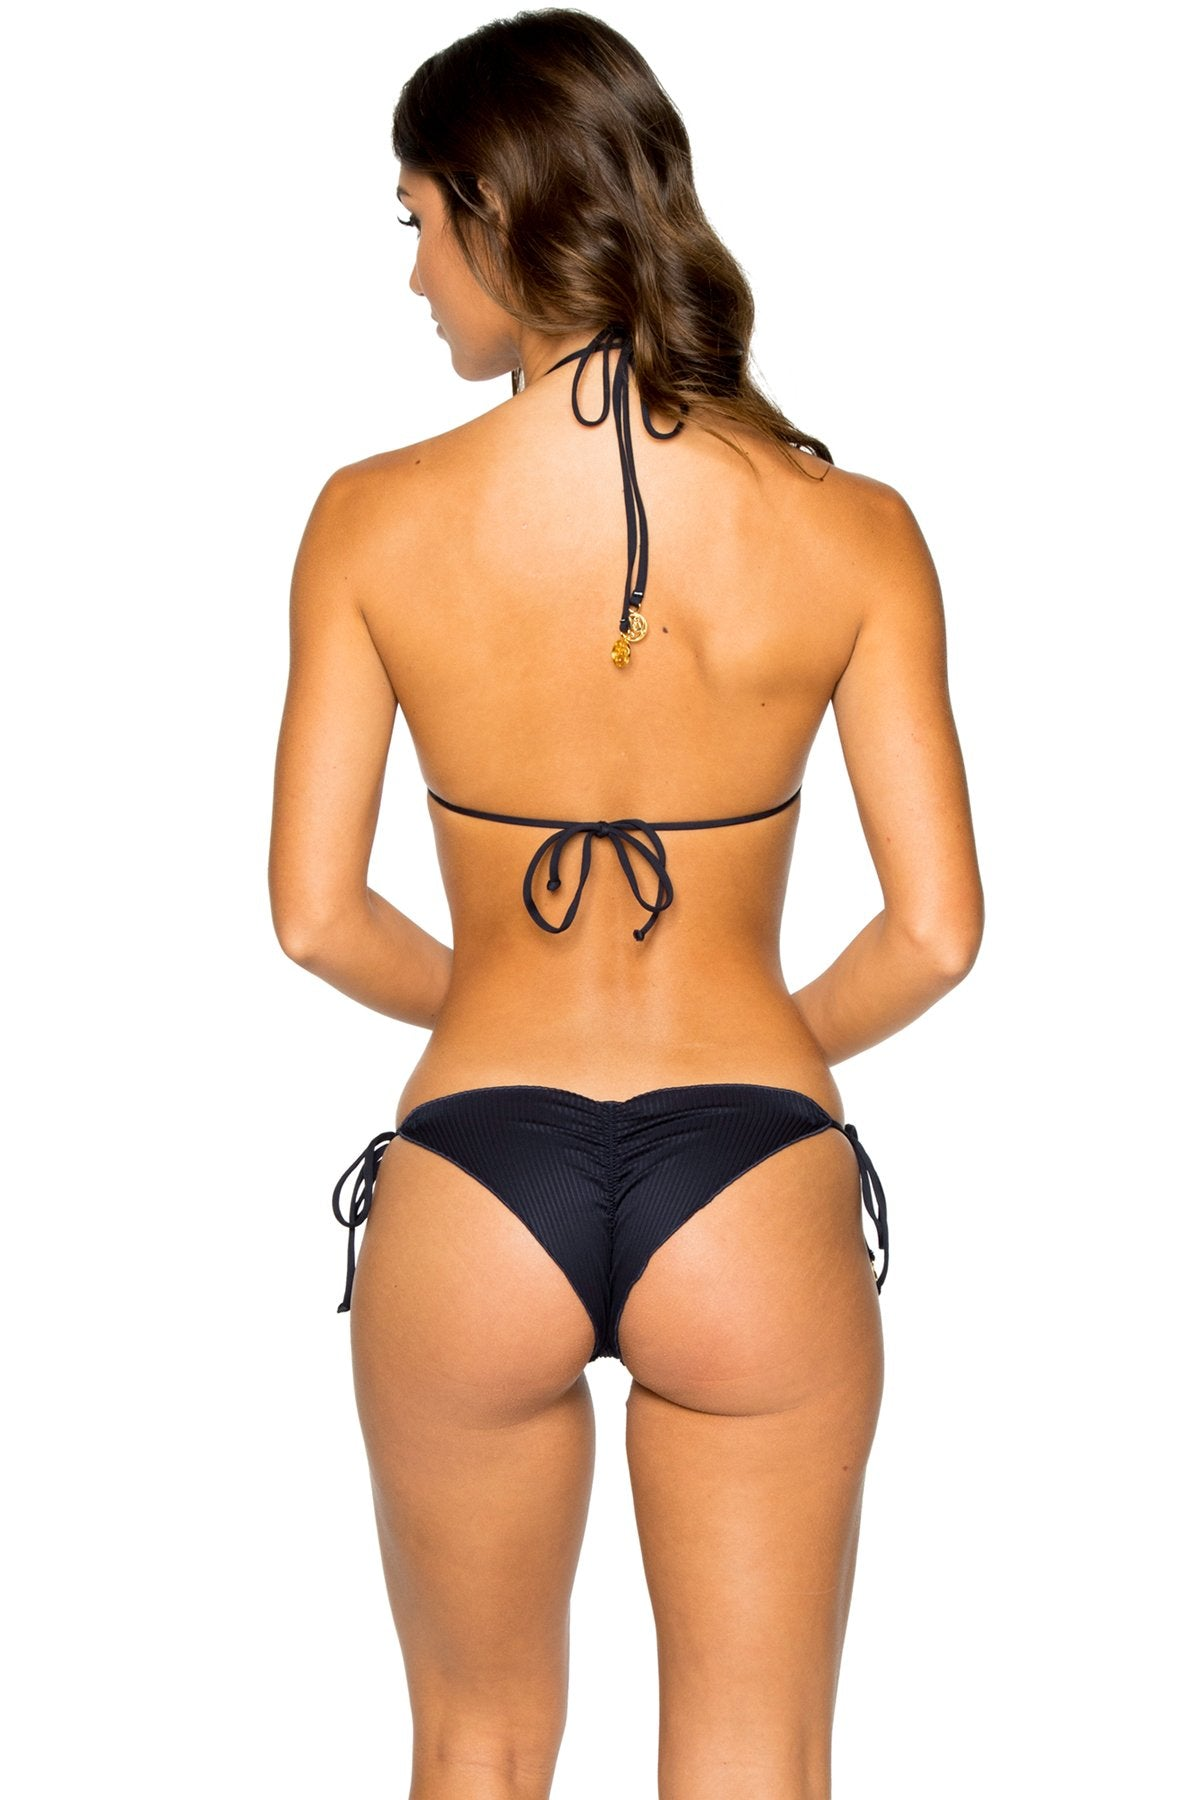 COSTA DEL SOL - Triangle Top & Wavey Ruched Back Brazilian Tie Side Bottom • Mar De Gibraltar